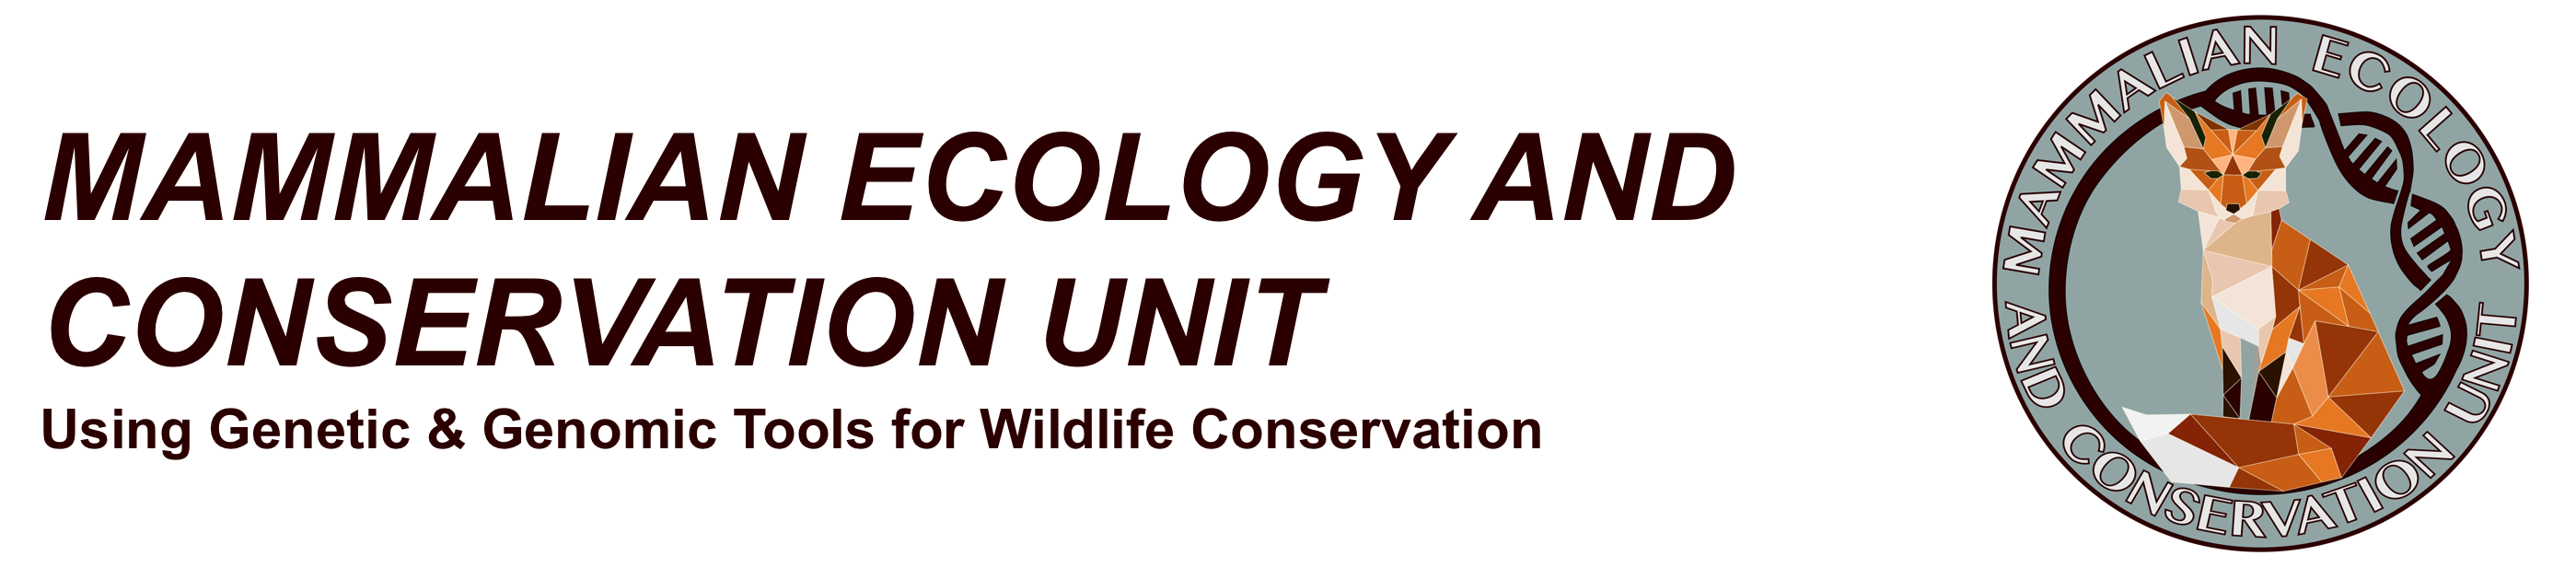 Mammalian Ecology and Conservation Unit